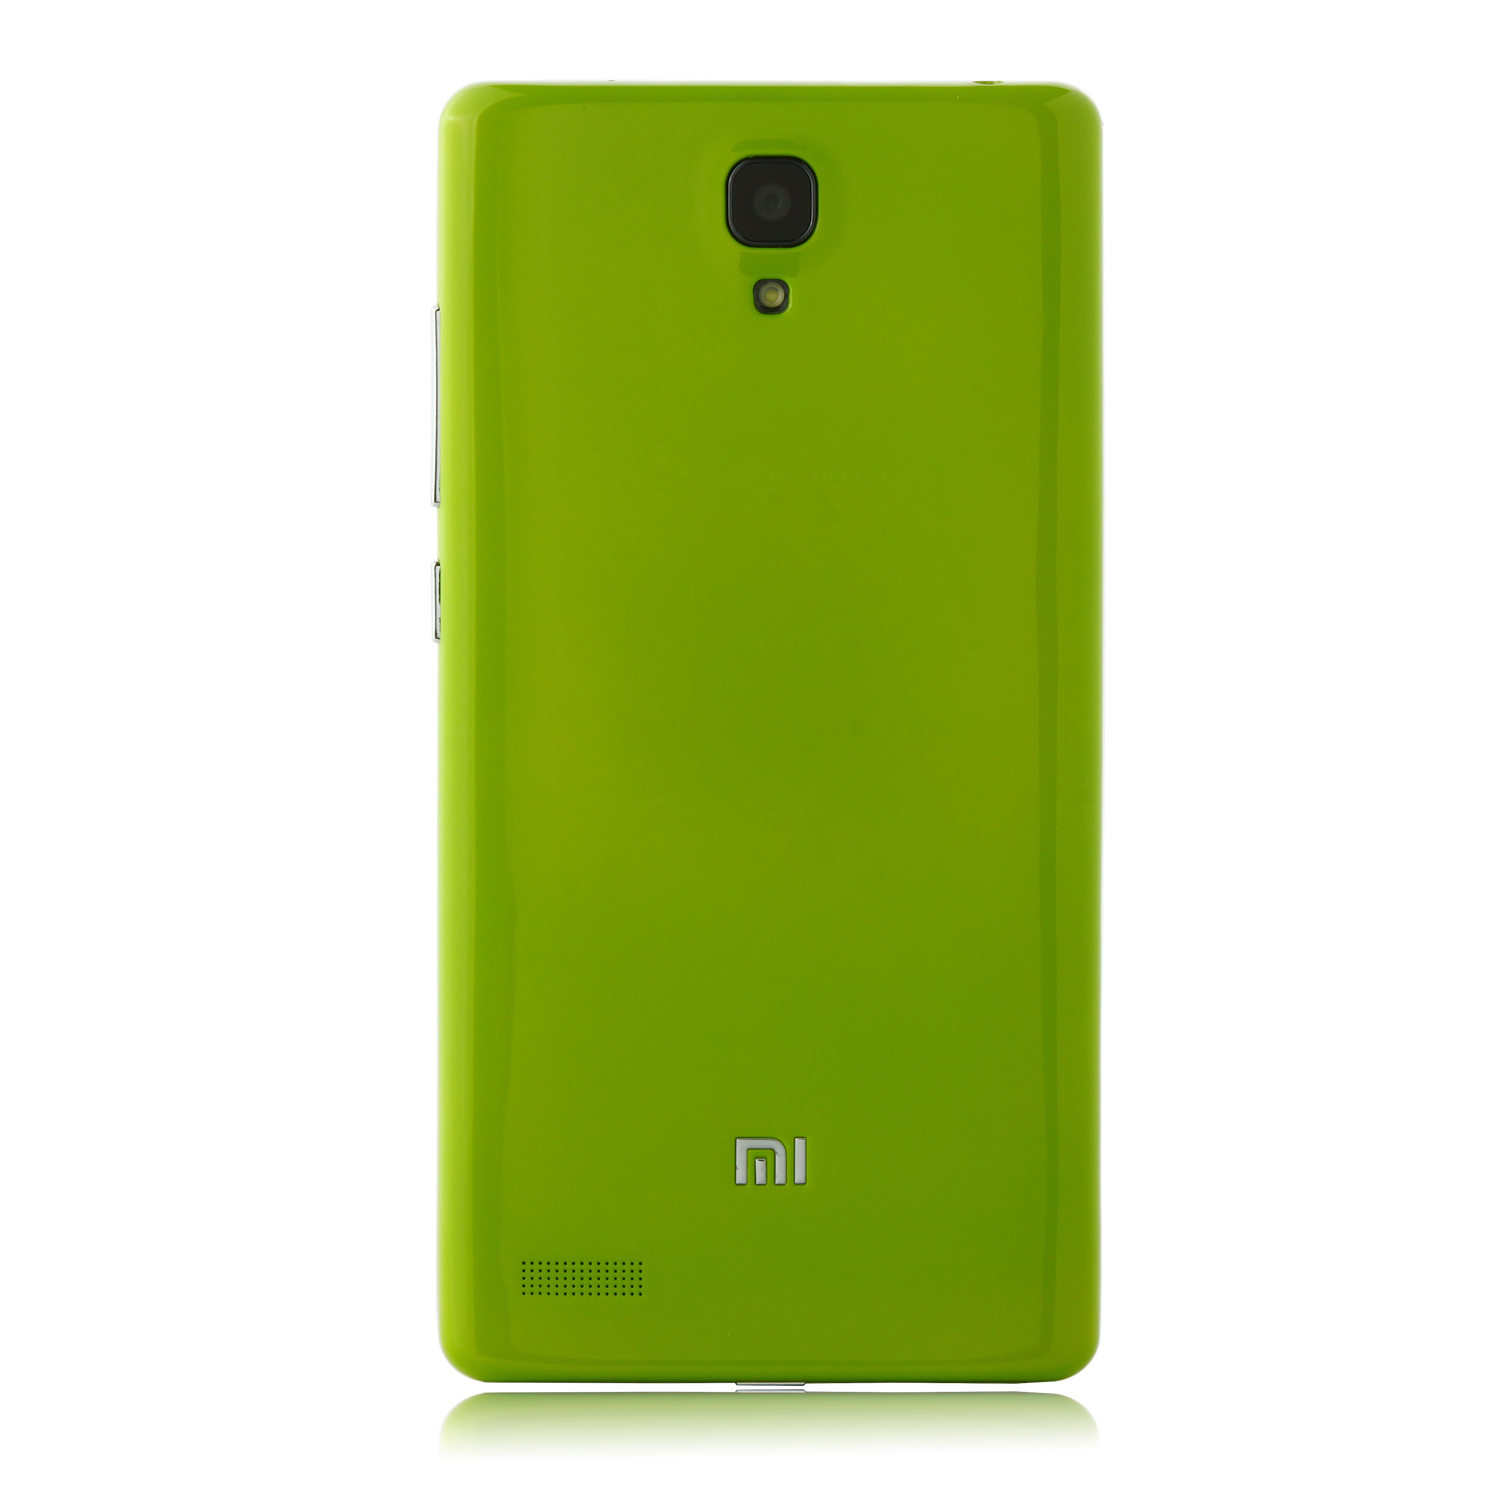 Battery Cover Back Case for XIAOMI Redmi Note Smartphone Lemon Green